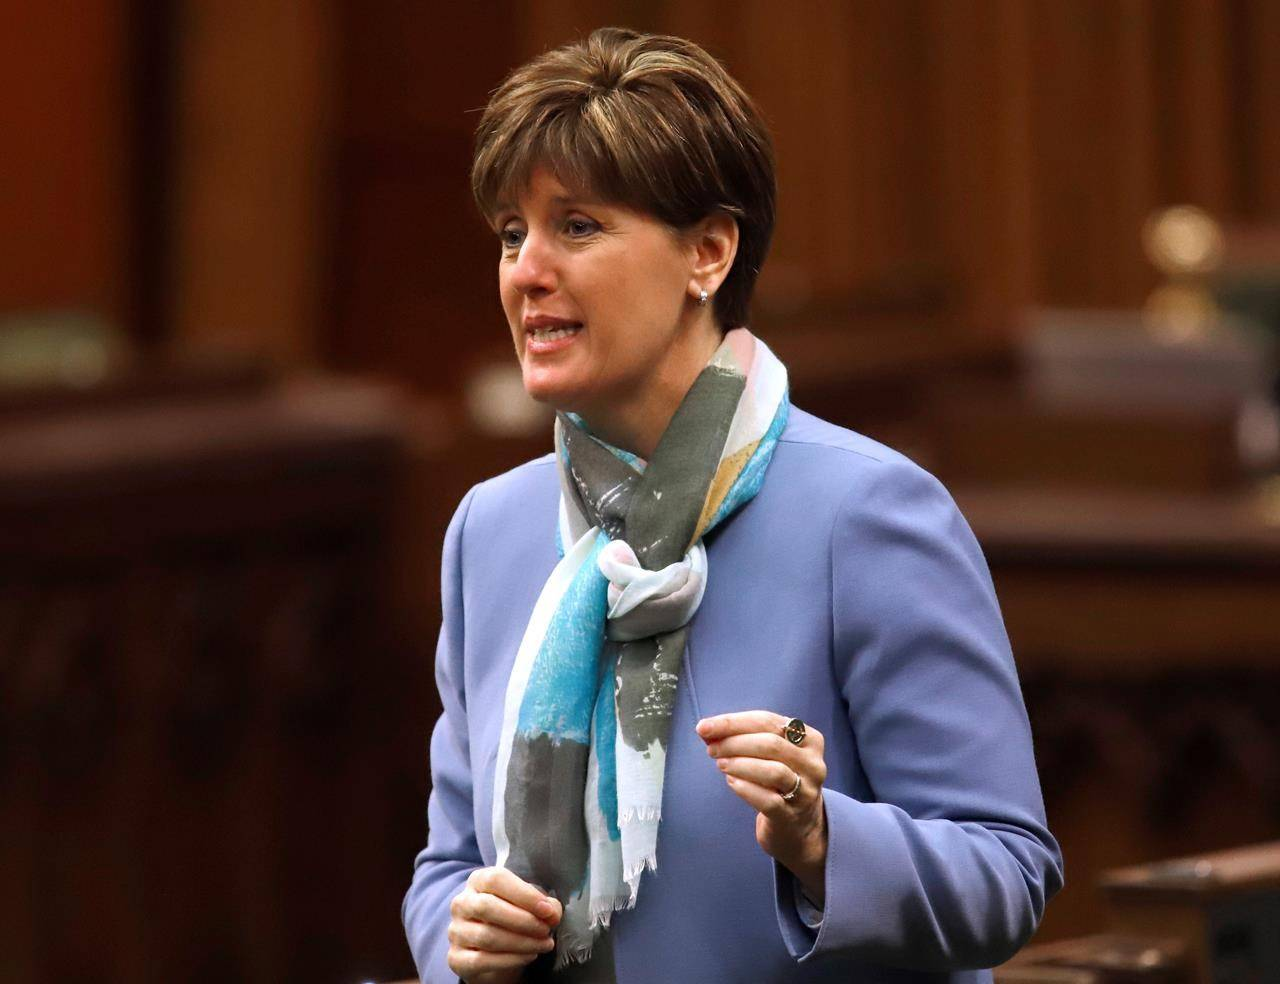 Minister of Agriculture and Agri-Food Minister Marie-Claude Bibeau responds to a question during question period in the House of Commons on Parliament Hill in Ottawa on Friday, Dec. 11, 2020. A British Columbia company that feeds food waste to insects to produce pet food has received $6 million from the federal government for it's new state-of-the-art plant just north of Calgary. THE CANADIAN PRESS/ Patrick Doyle